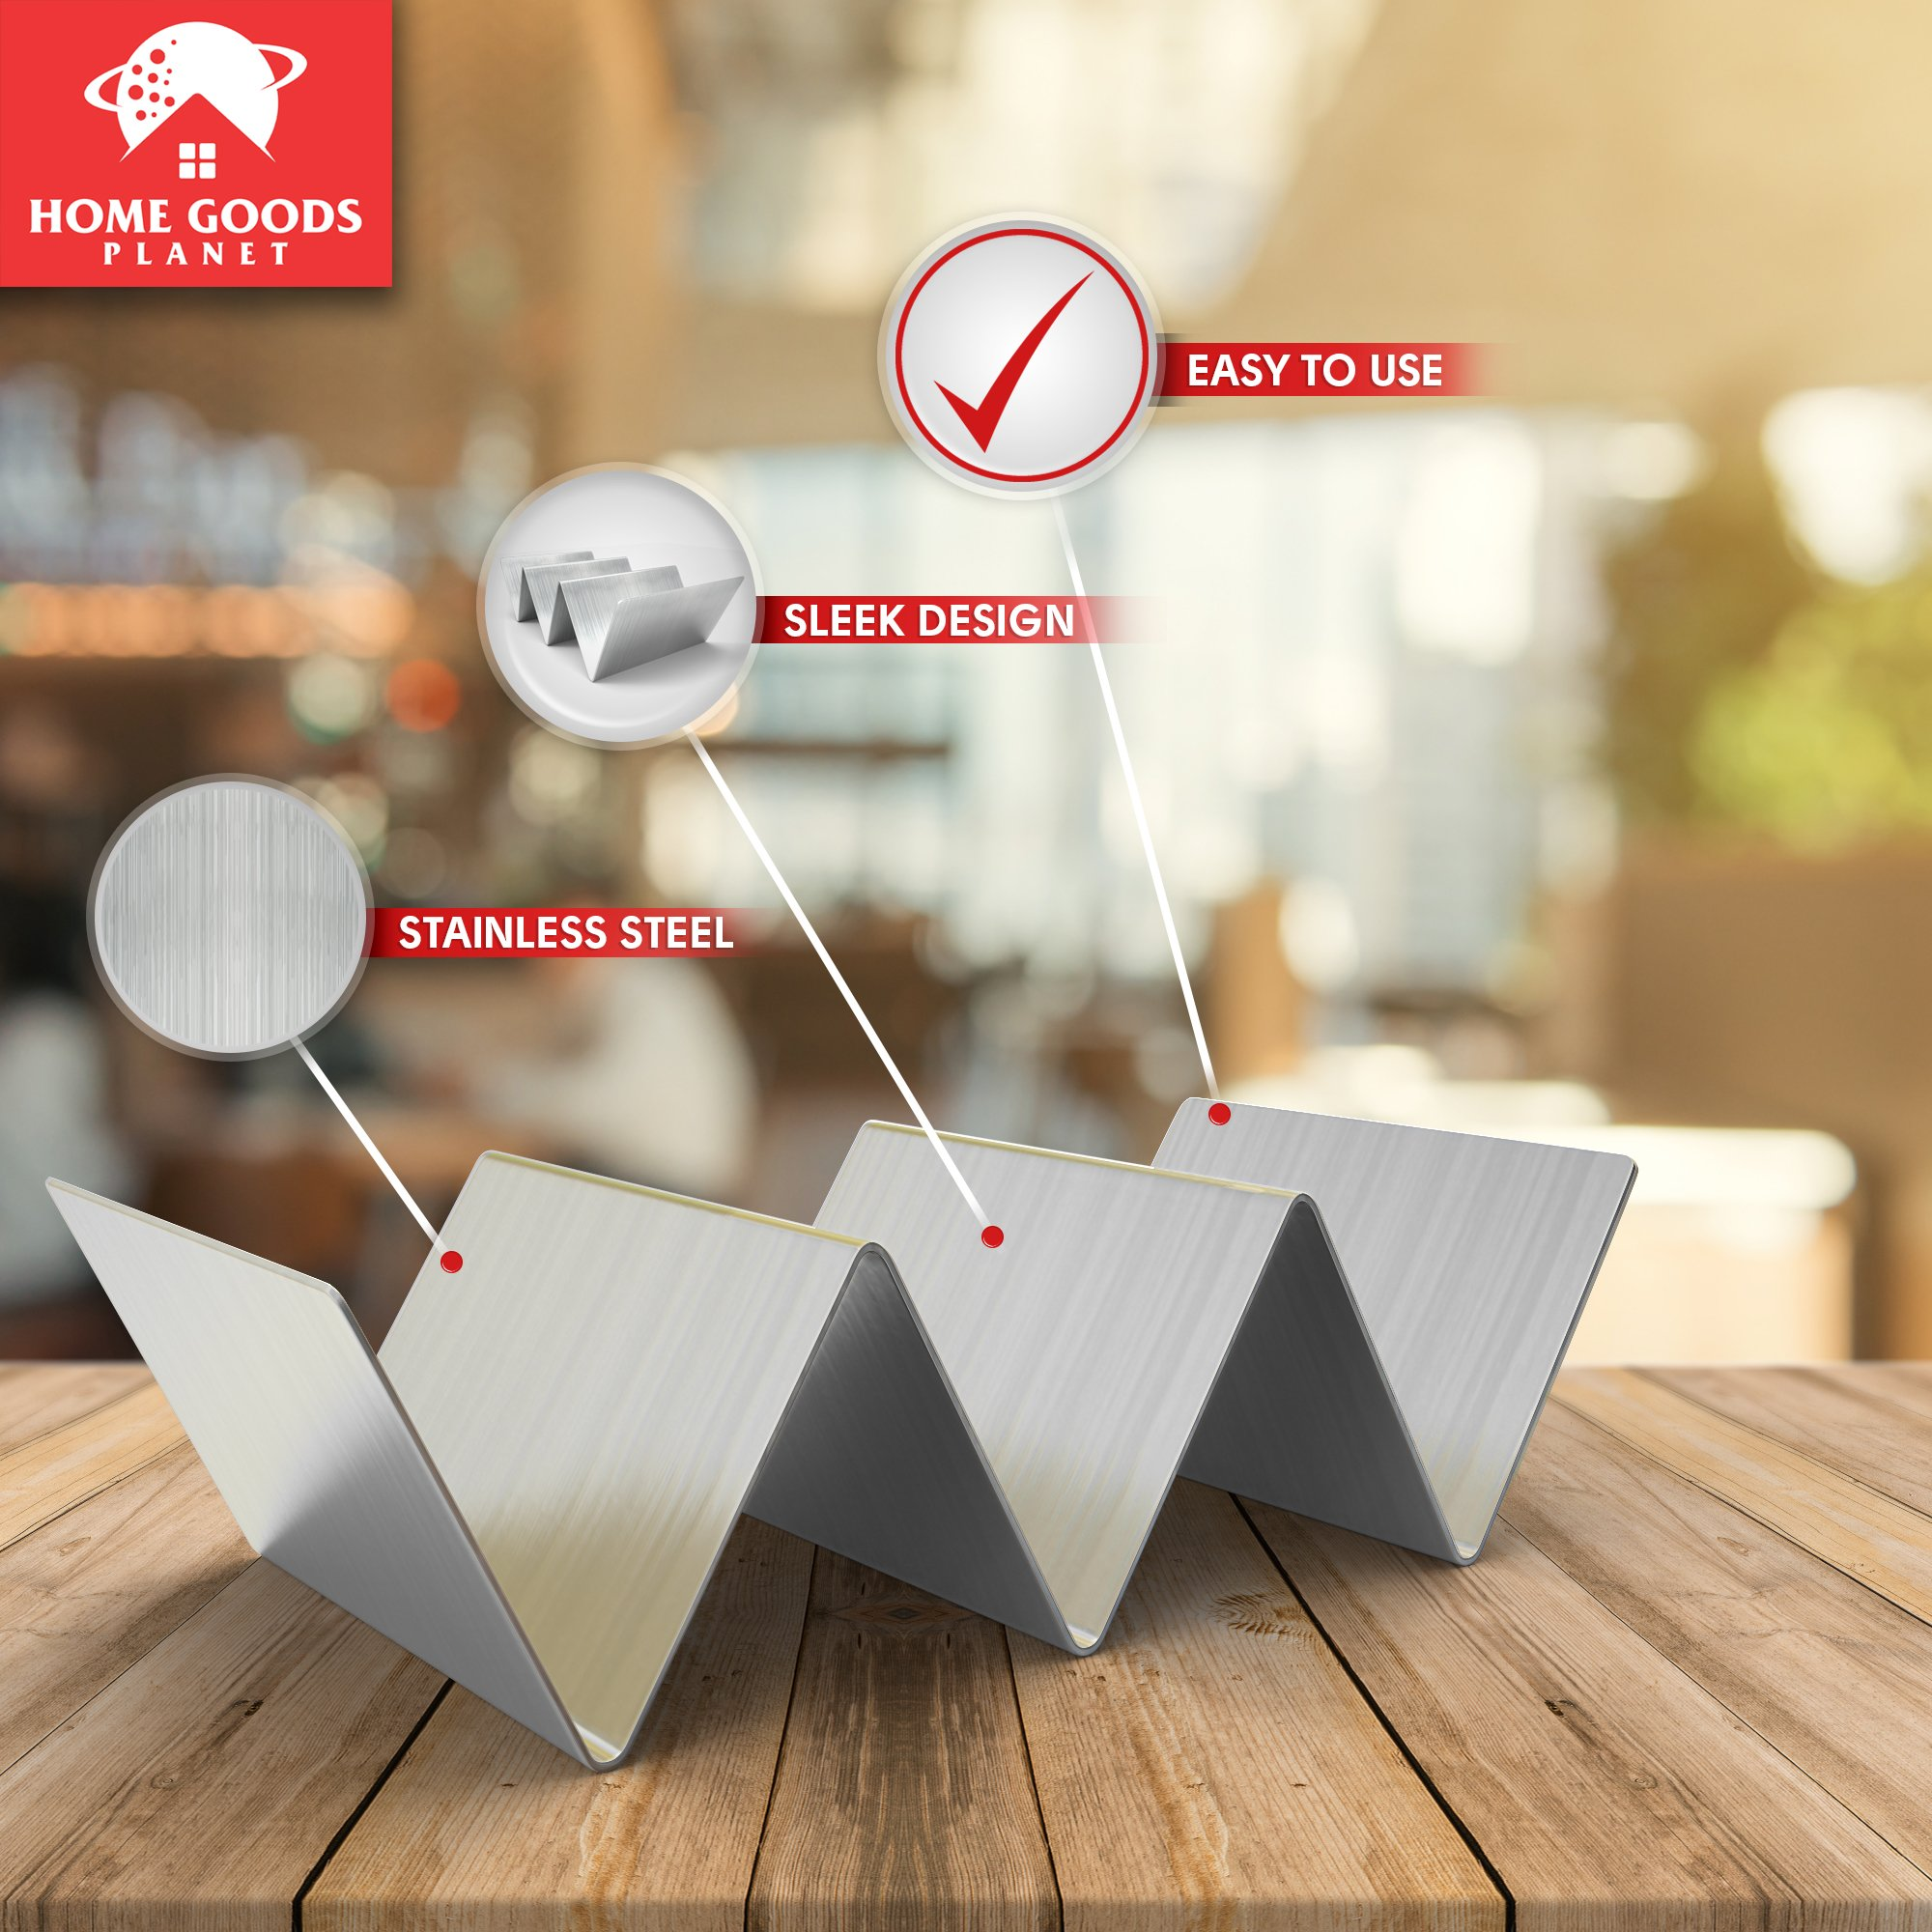 Taco Holder - Set of 2 Shell Racks - Stainless Steel Durable Taco Stand Tray - Ideal for Hard or Soft Shell Tacos - Oven & Dishwasher Safe Tacos Serving Tray or Taco Platter - Includes Recipe e-book by Home Goods Planet (Image #2)